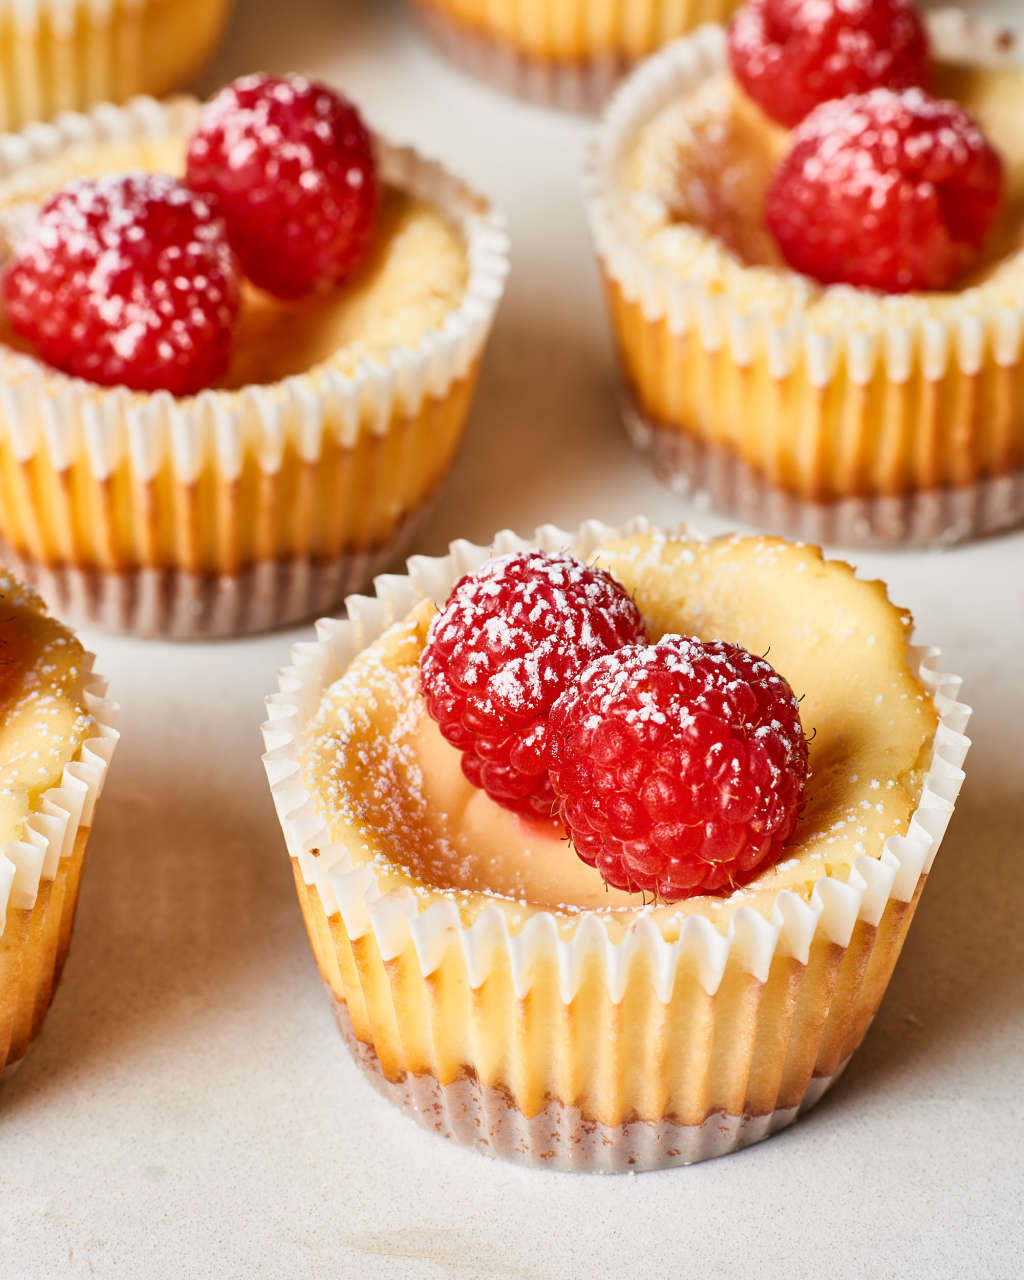 These Mini Cheesecakes Couldn't Be Easier